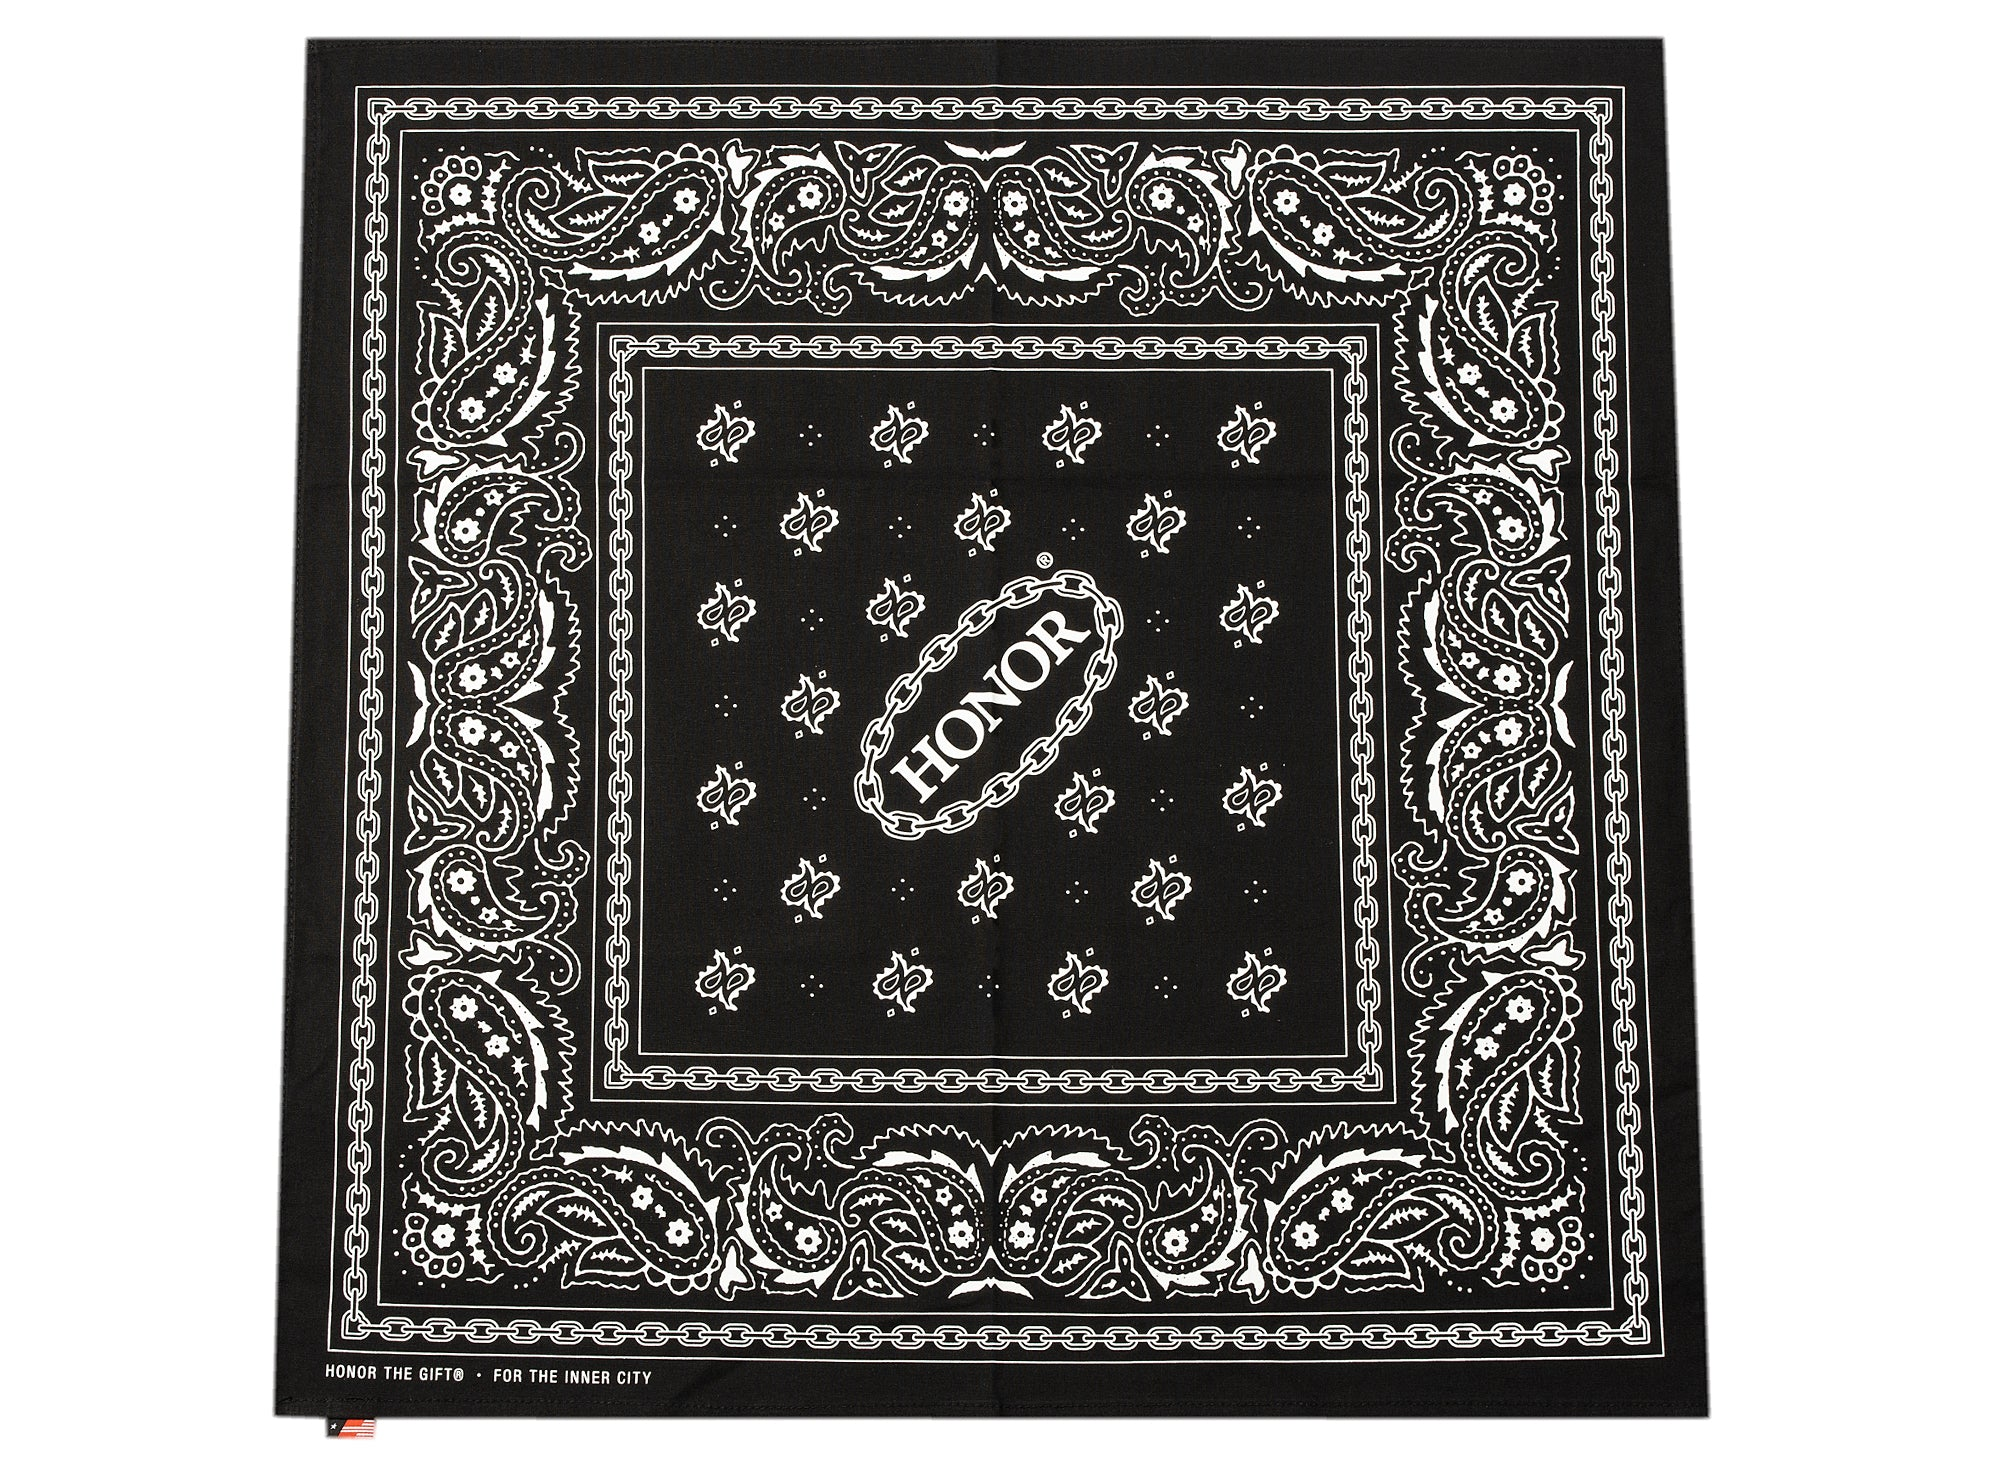 Honor the Gift Honor Shop Bandana in Black xld